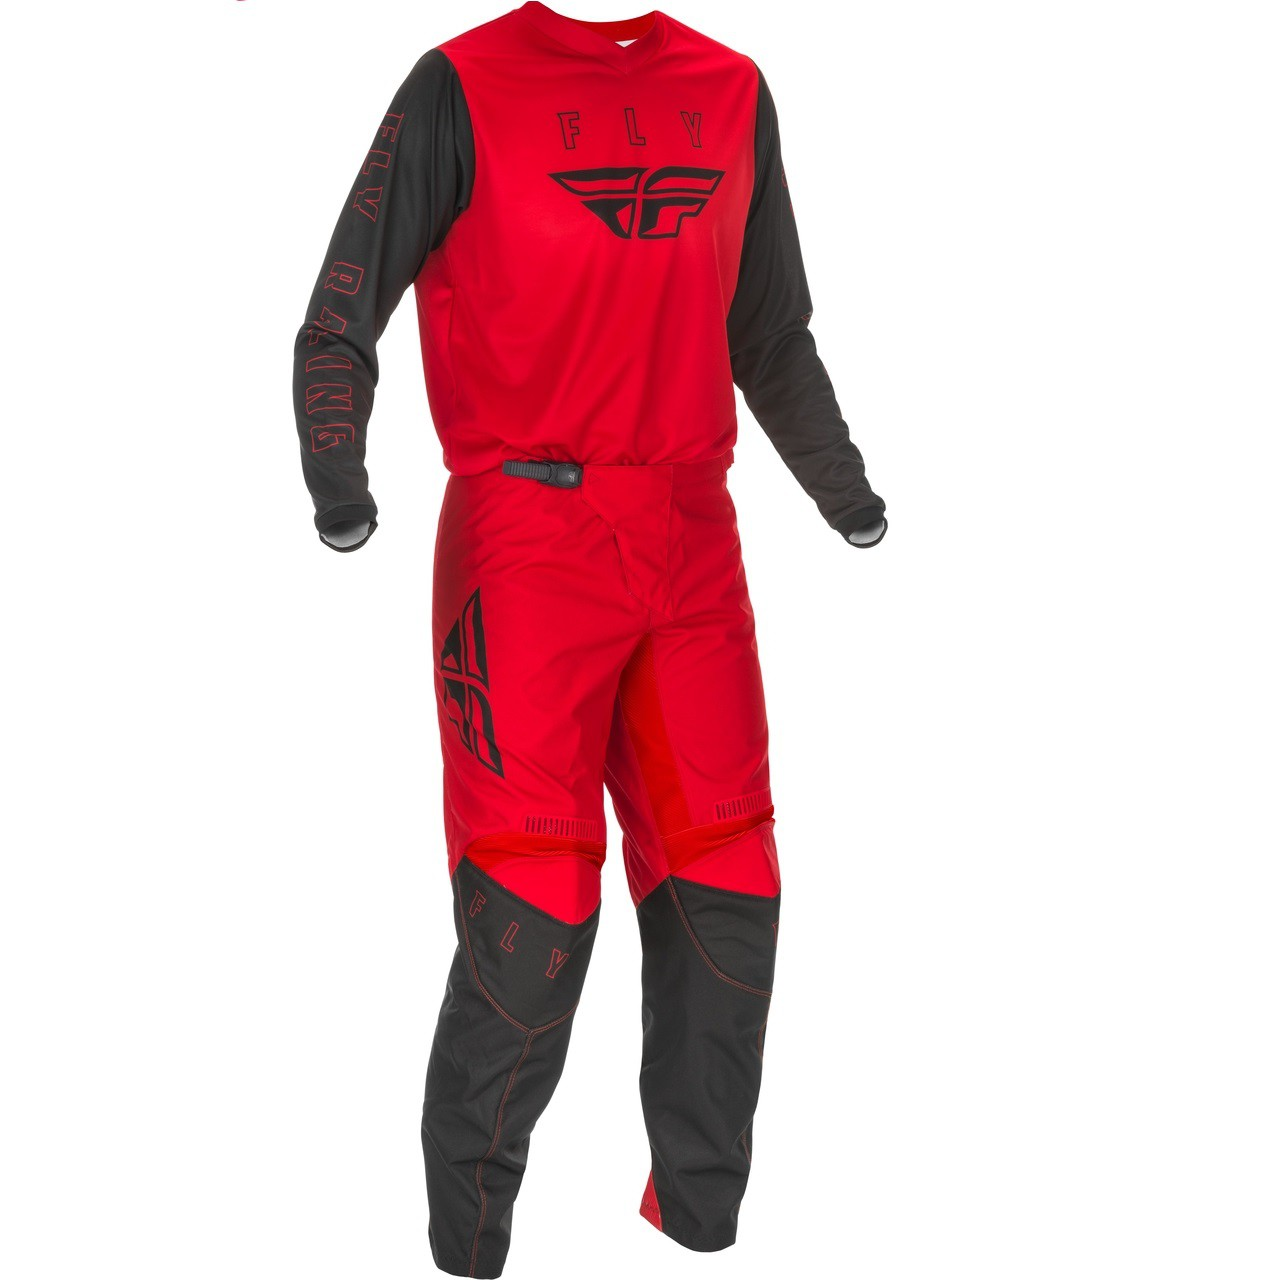 Kit Calça + Camisa Motocross Fly F-16 2021